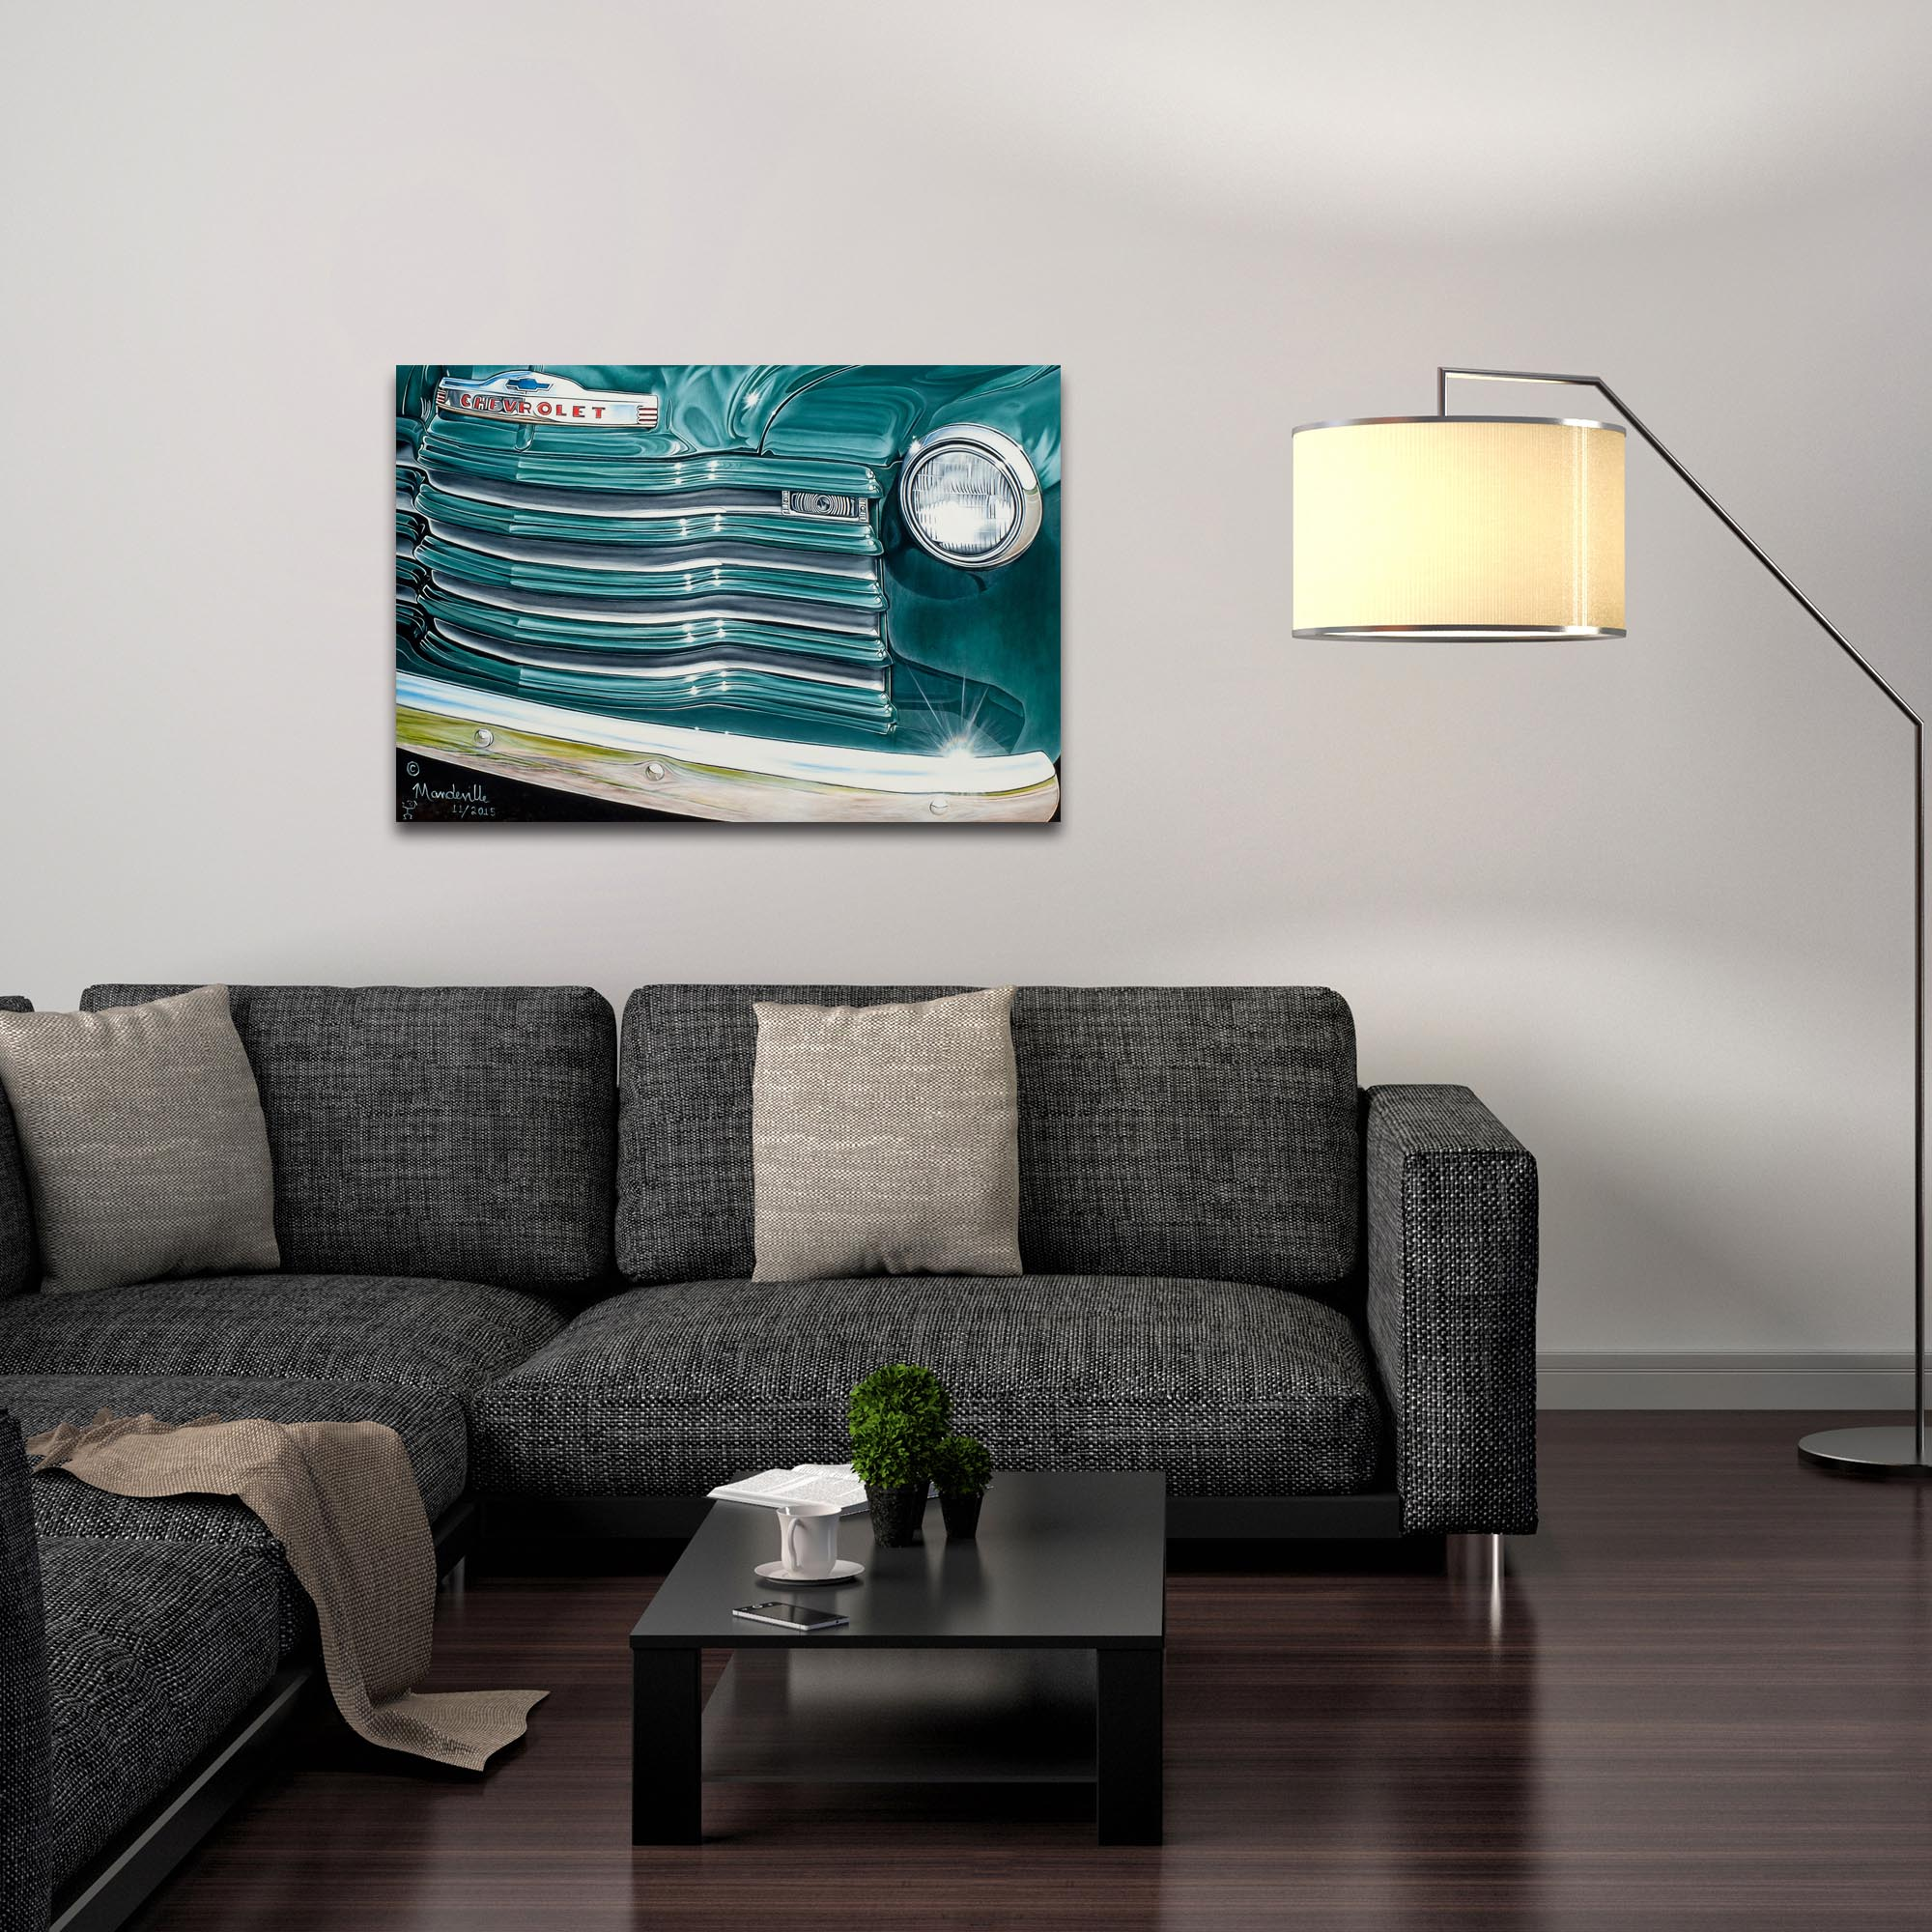 Americana Wall Art 'Grandpaz' - Classic Cars Decor on Metal or Plexiglass - Lifestyle View